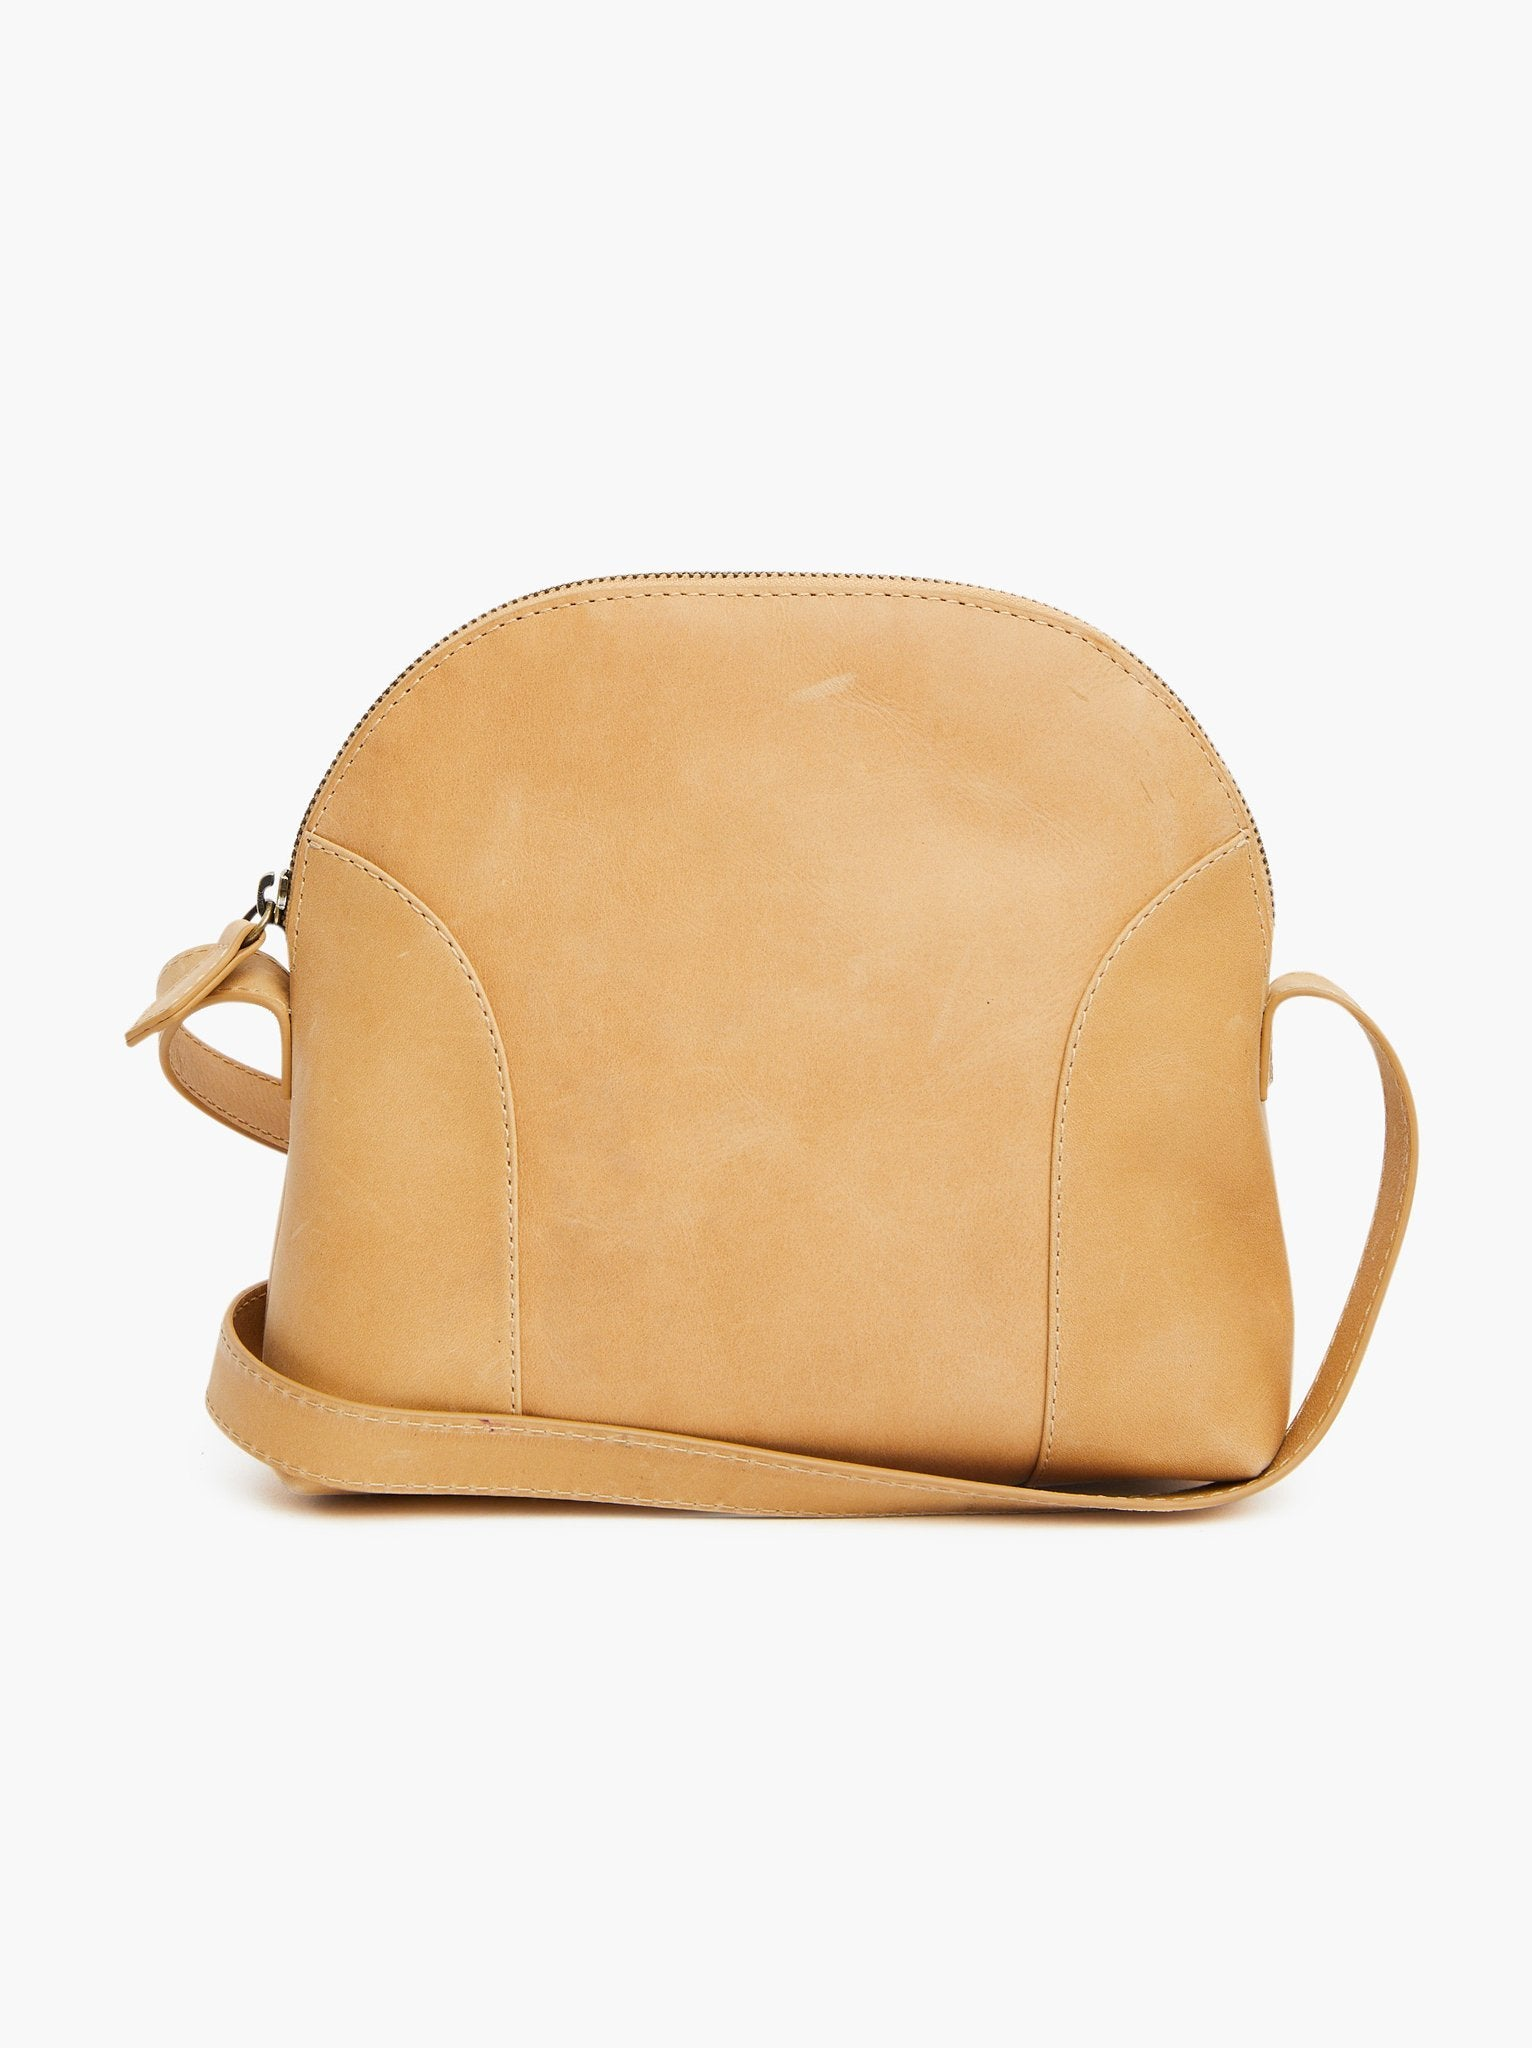 Fawn colored dome shaped leather bag shown against white backdrop with crossbody strap laid around it